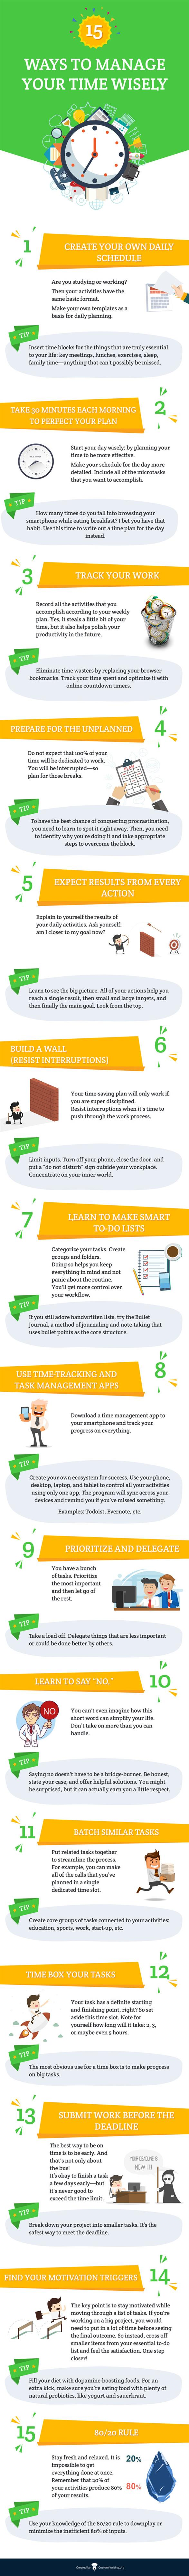 171117-infographic-time-management.jpg